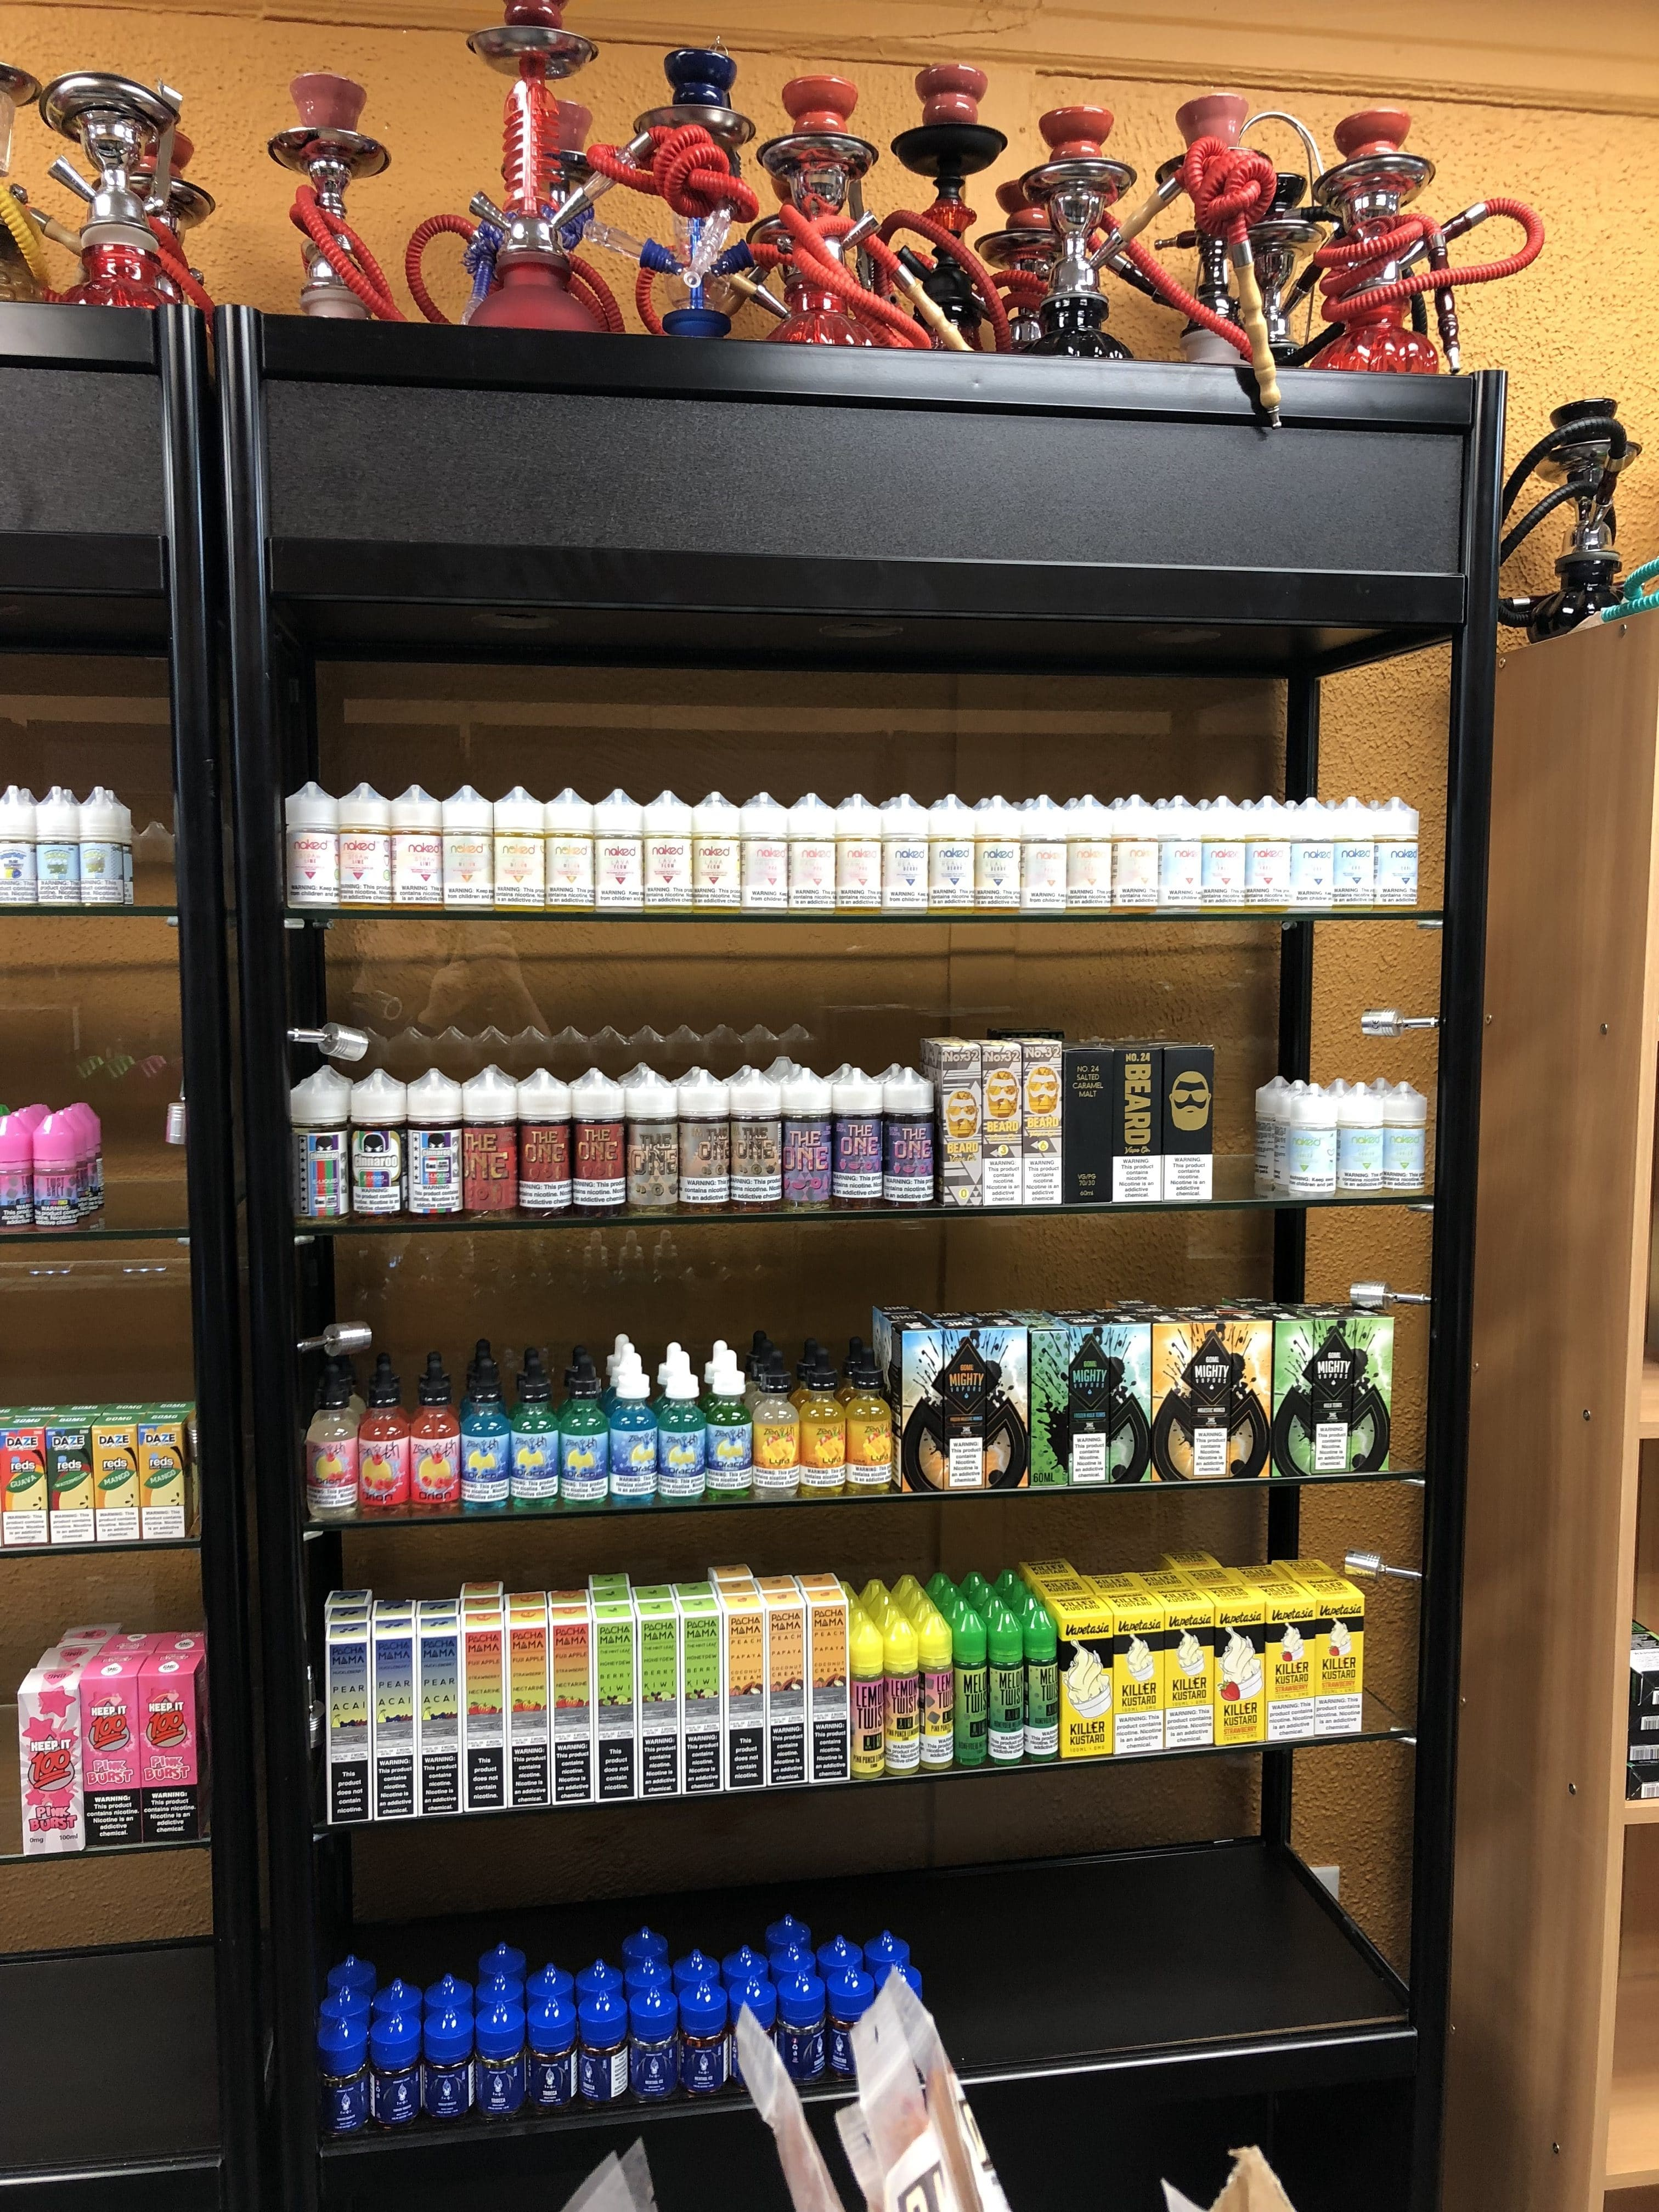 Vape Juice wall in Paterson with mini Hookahs